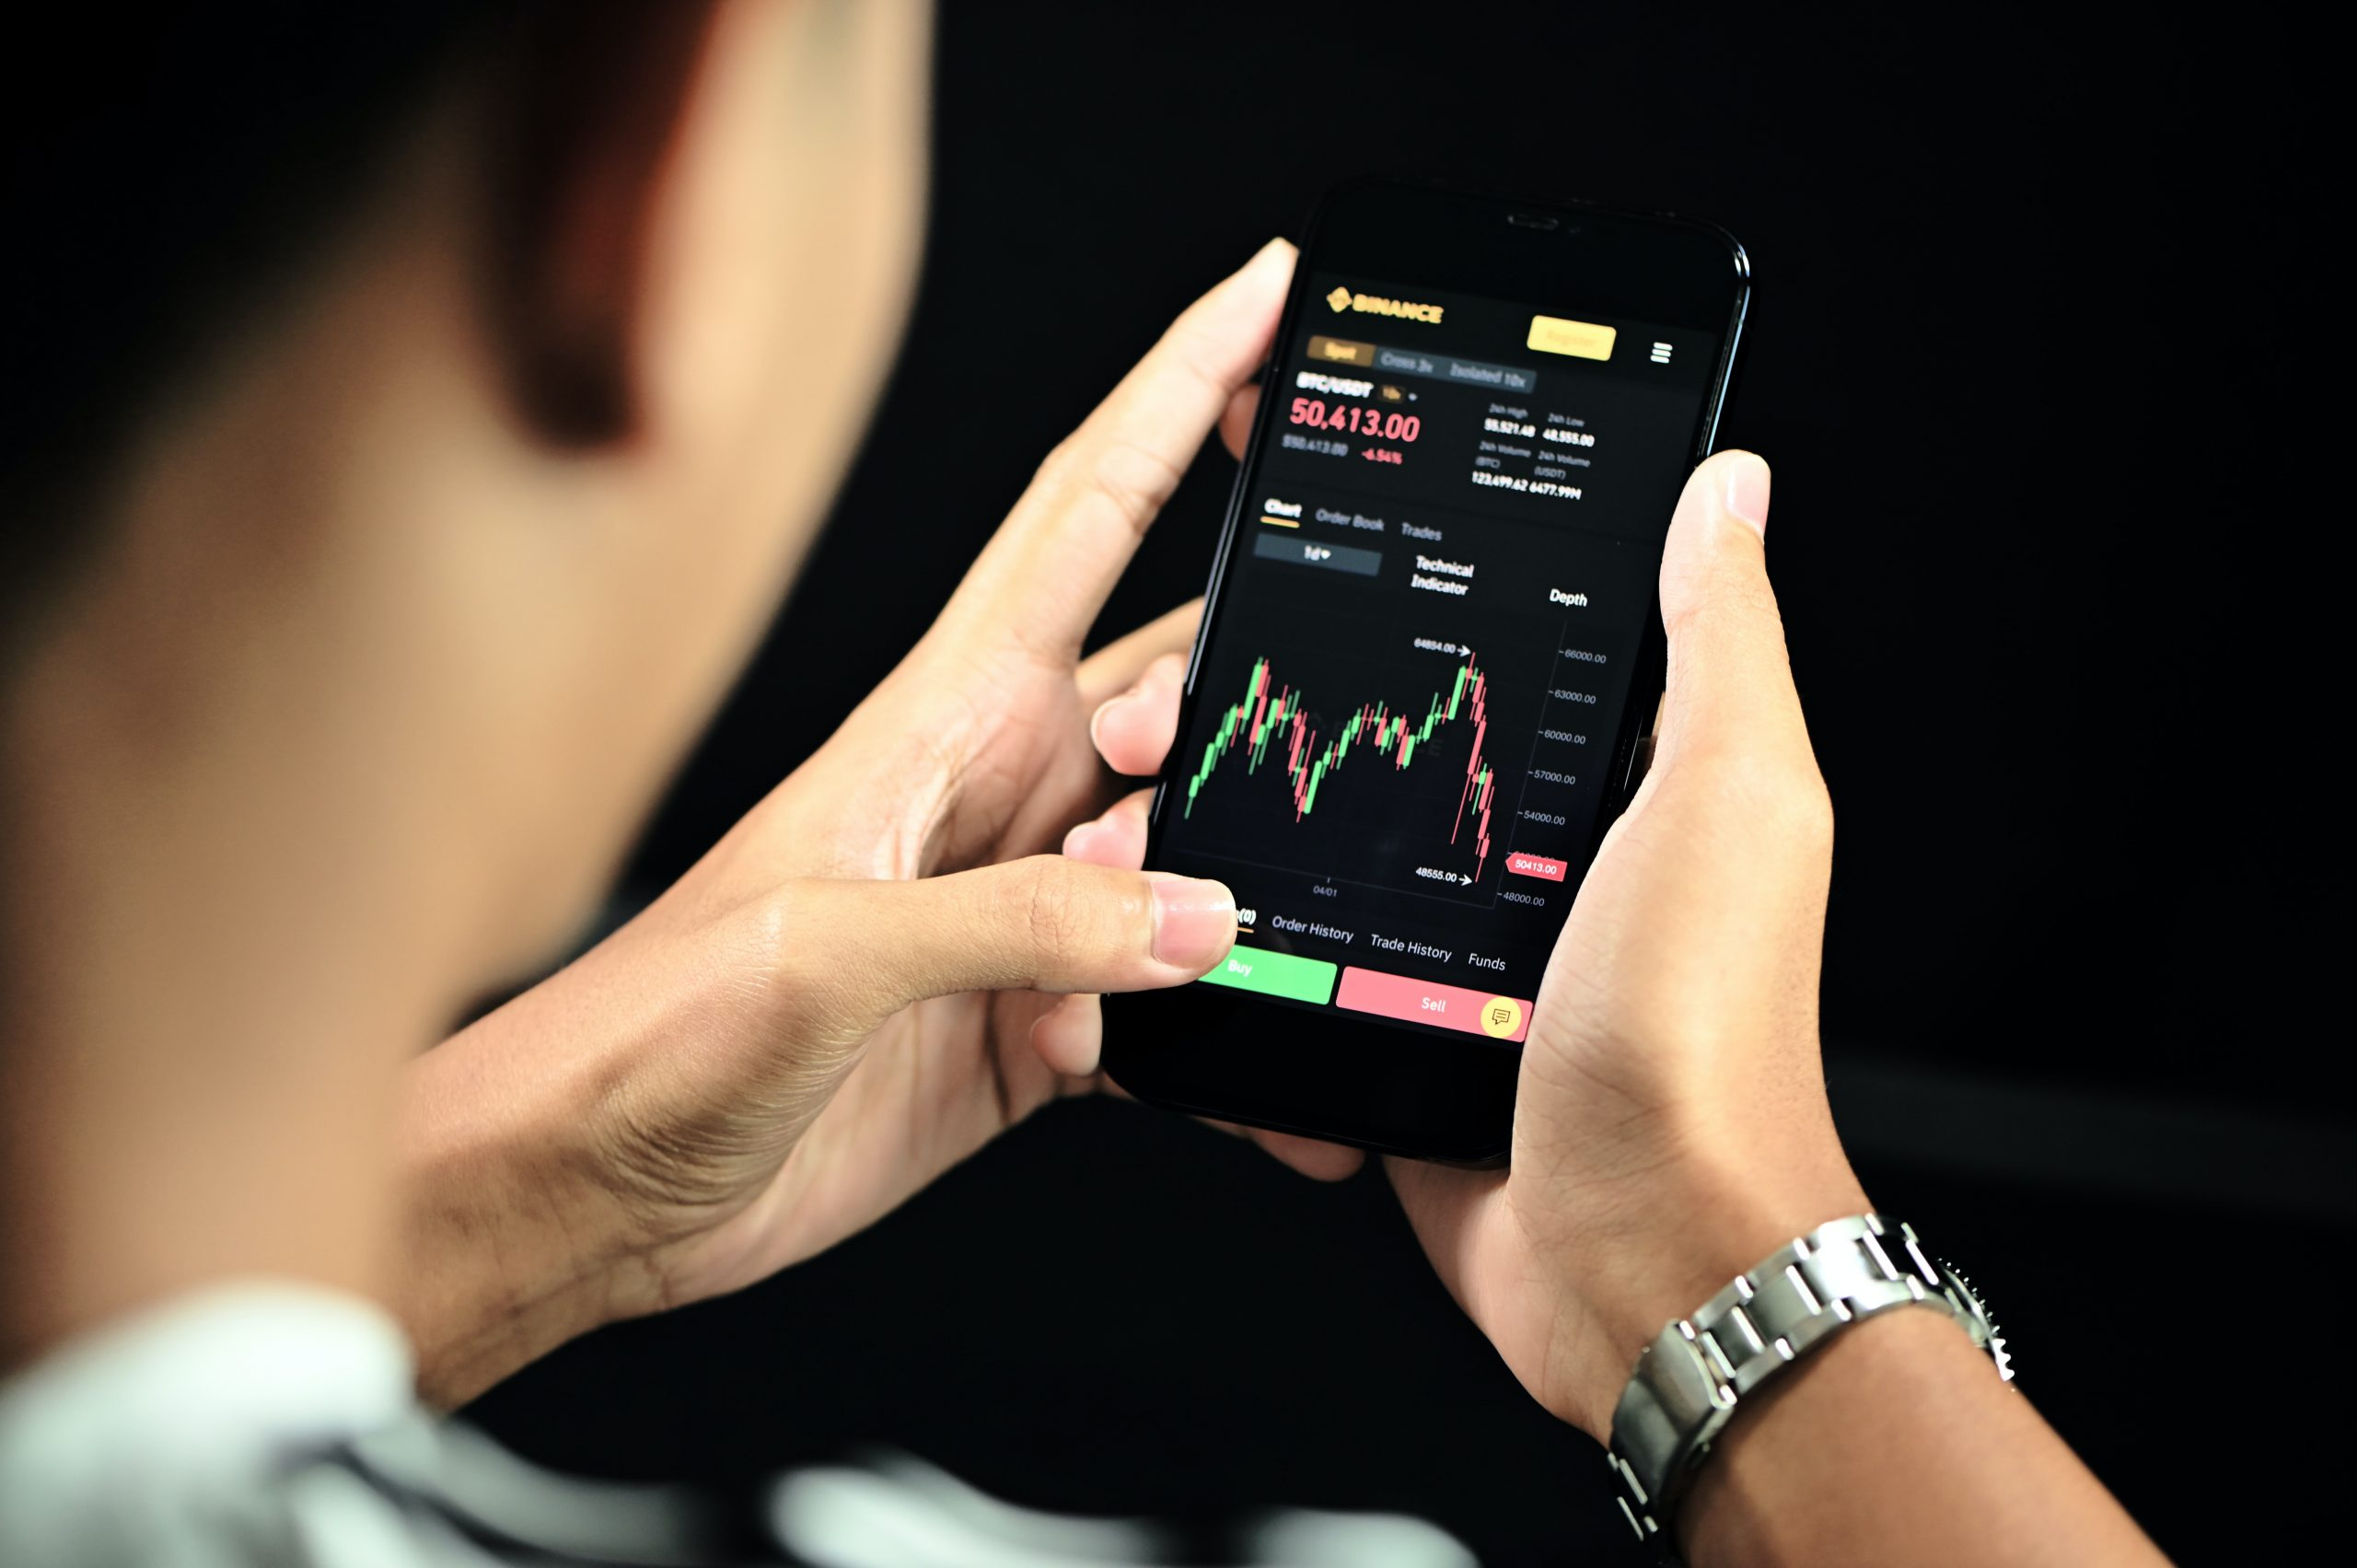 Examining a price chart on the Binance mobile application.